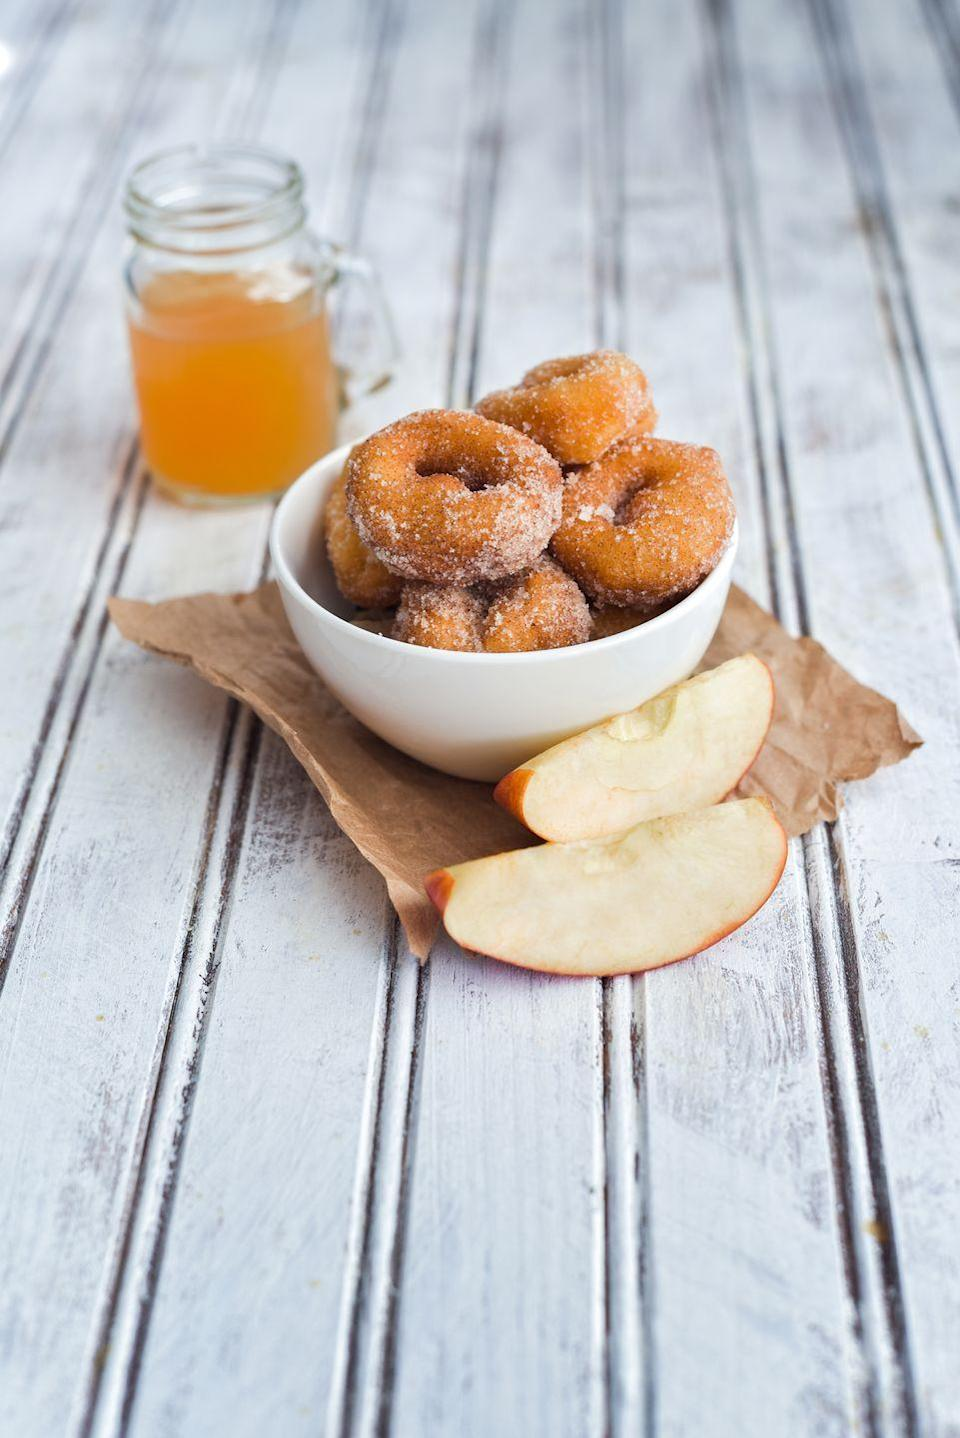 "<p>Watch how quickly doughnuts disappear, particularly when they're dusted with a variety of delectable sugar coatings: maple, confectioners', or cinnamon spice.</p><p><strong><a href=""https://www.countryliving.com/food-drinks/recipes/a1997/apple-cider-doughnuts/"" rel=""nofollow noopener"" target=""_blank"" data-ylk=""slk:Get the recipe"" class=""link rapid-noclick-resp"">Get the recipe</a>.</strong></p>"